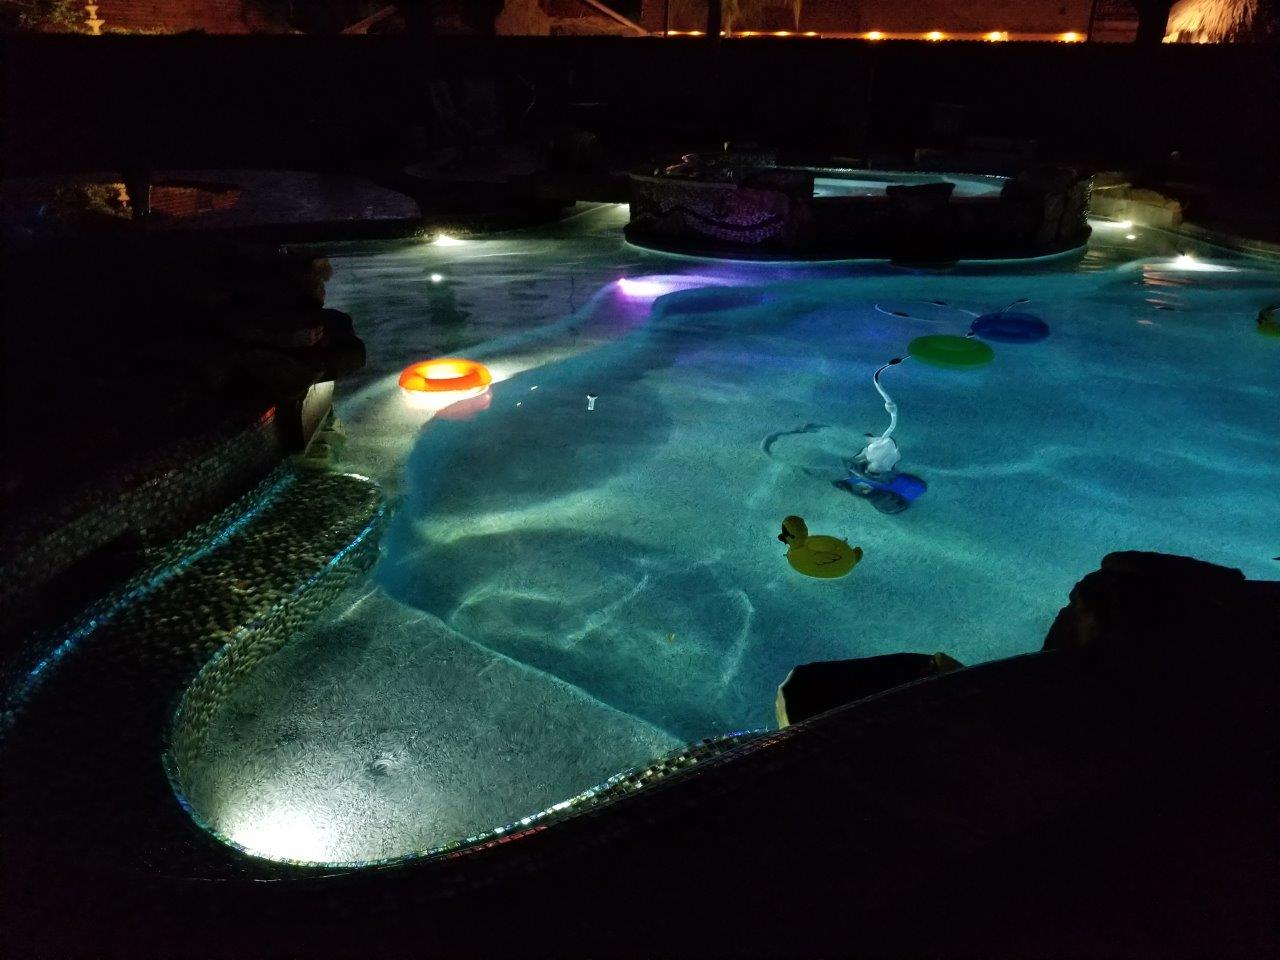 pool lighting design. Swimming Pool LED Lighting Design & Pool Lighting Design Lighting Placement Pool Design - Faacusa.co